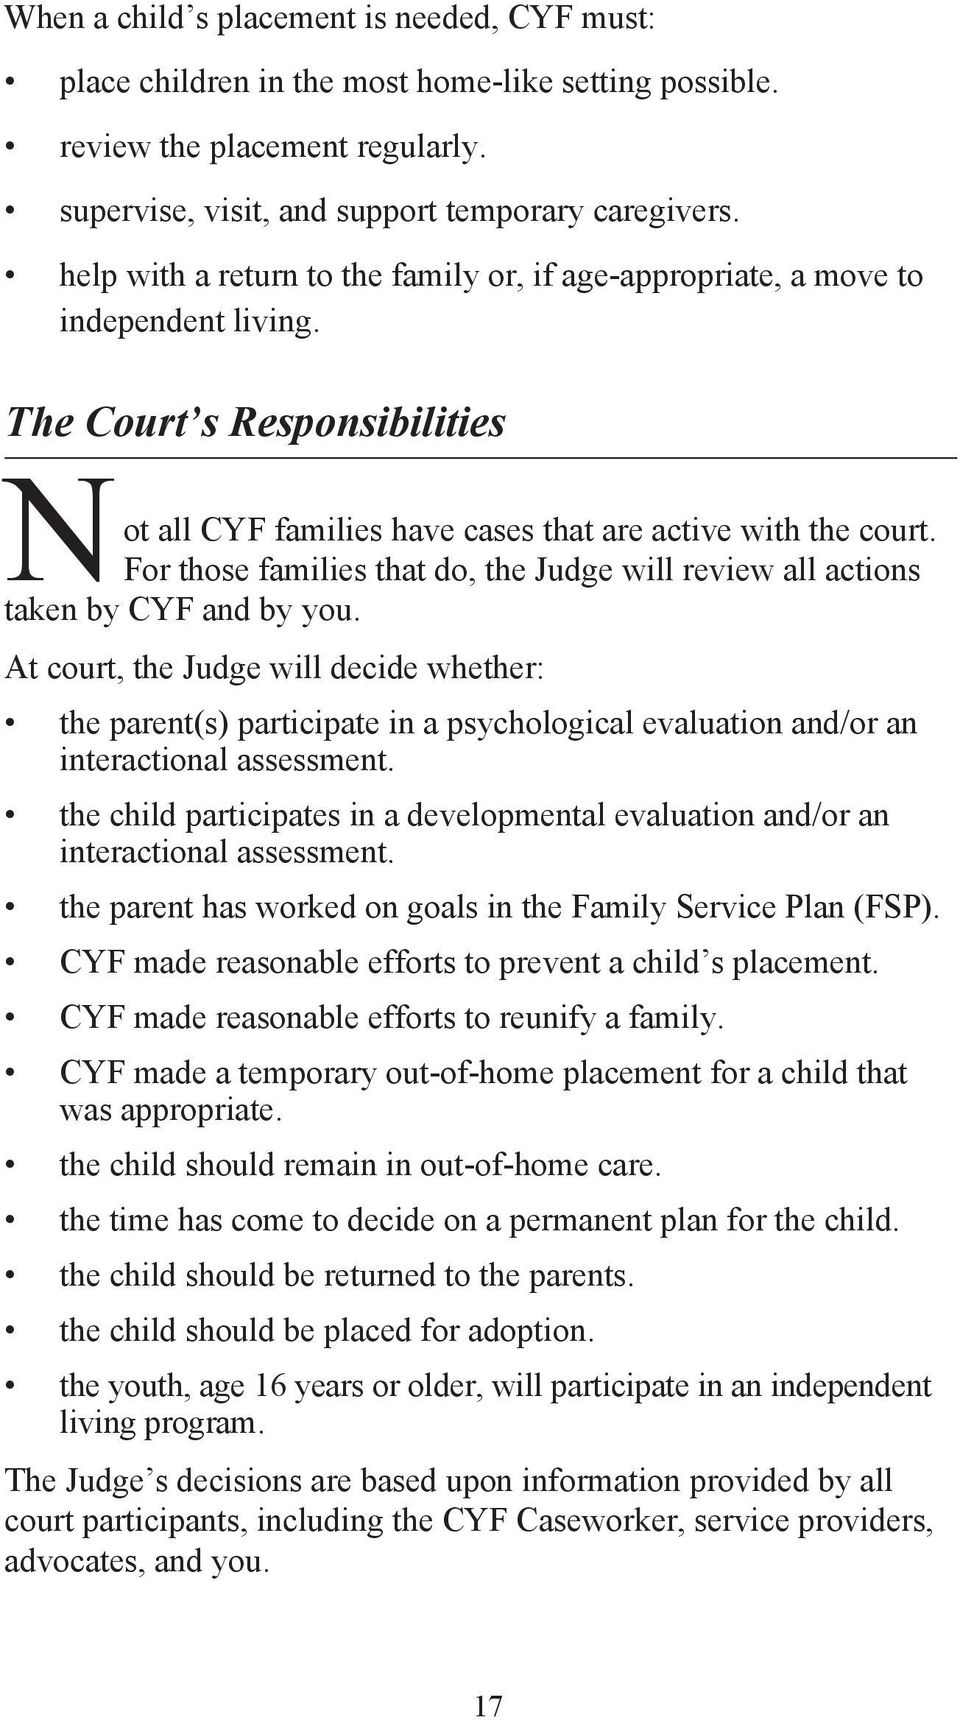 For those families that do, the Judge will review all actions taken by CYF and by you.